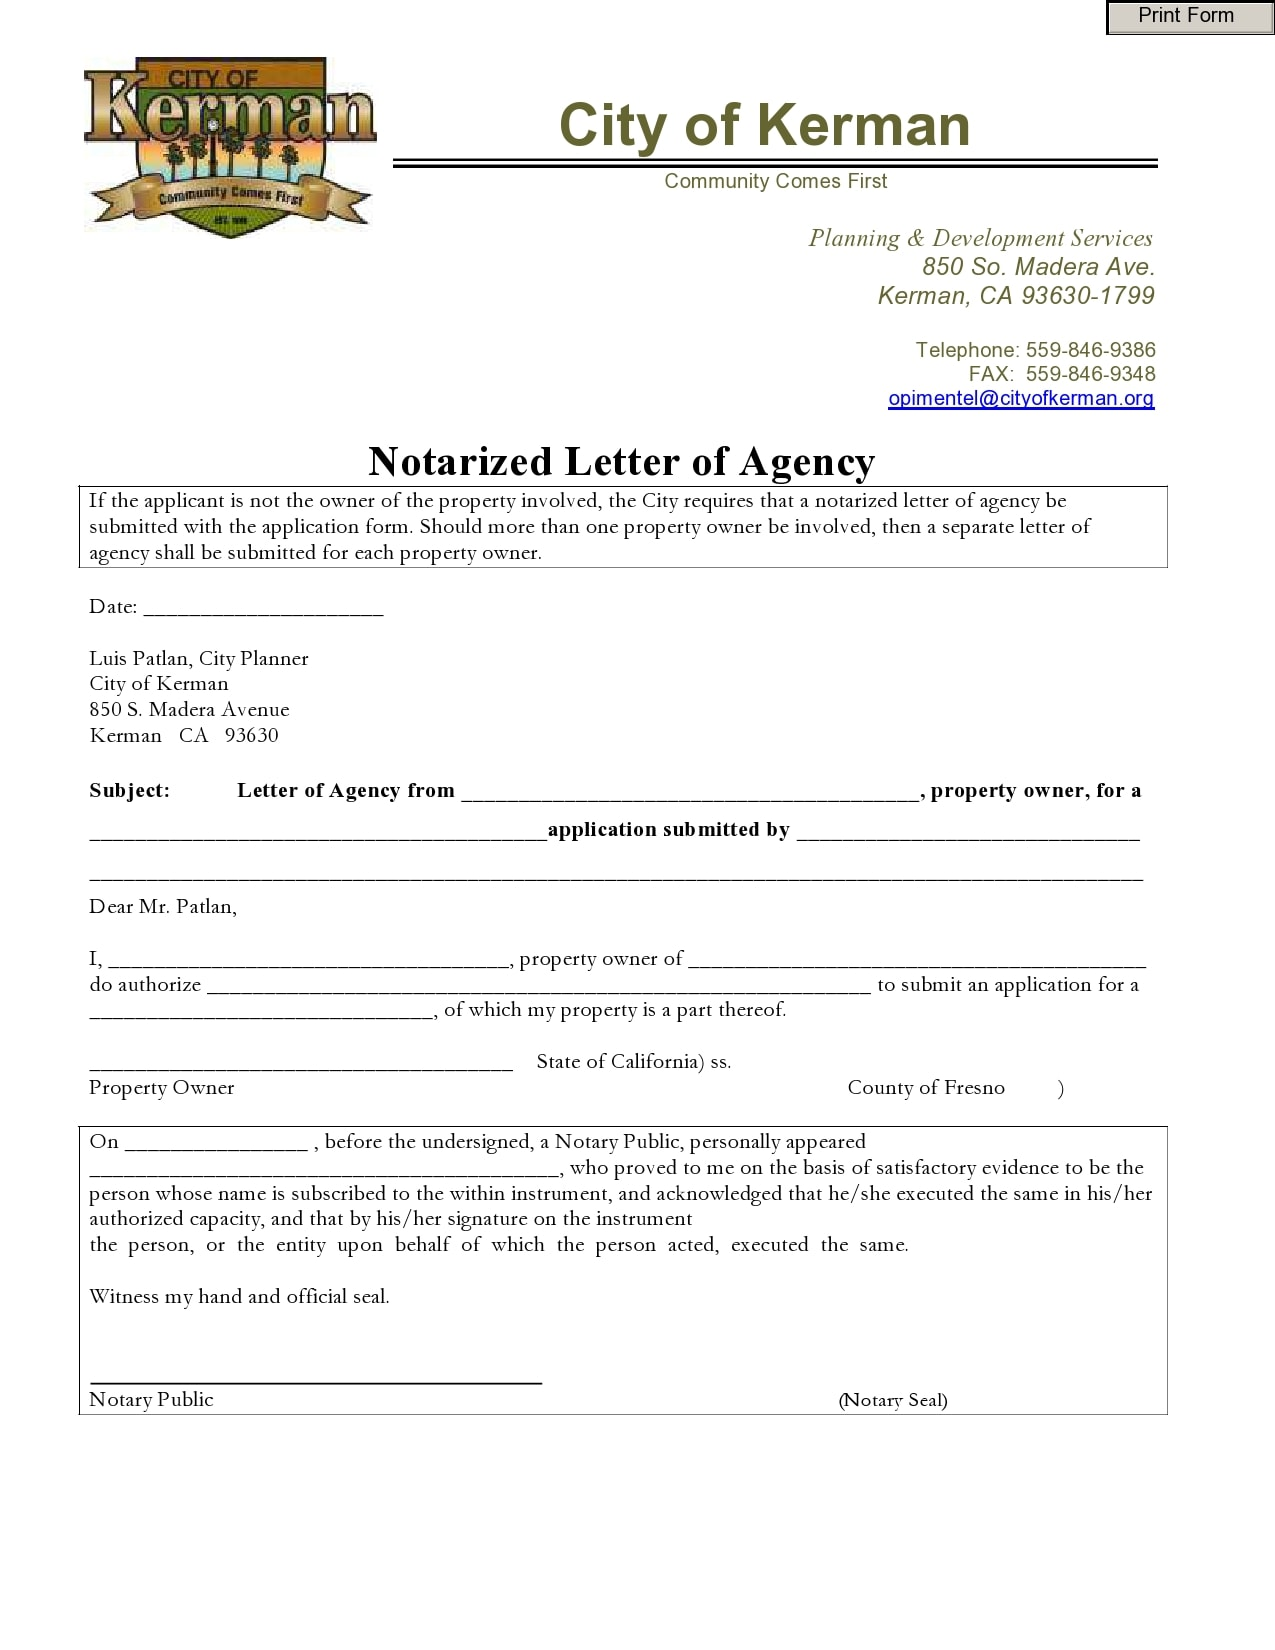 notarized letter 21